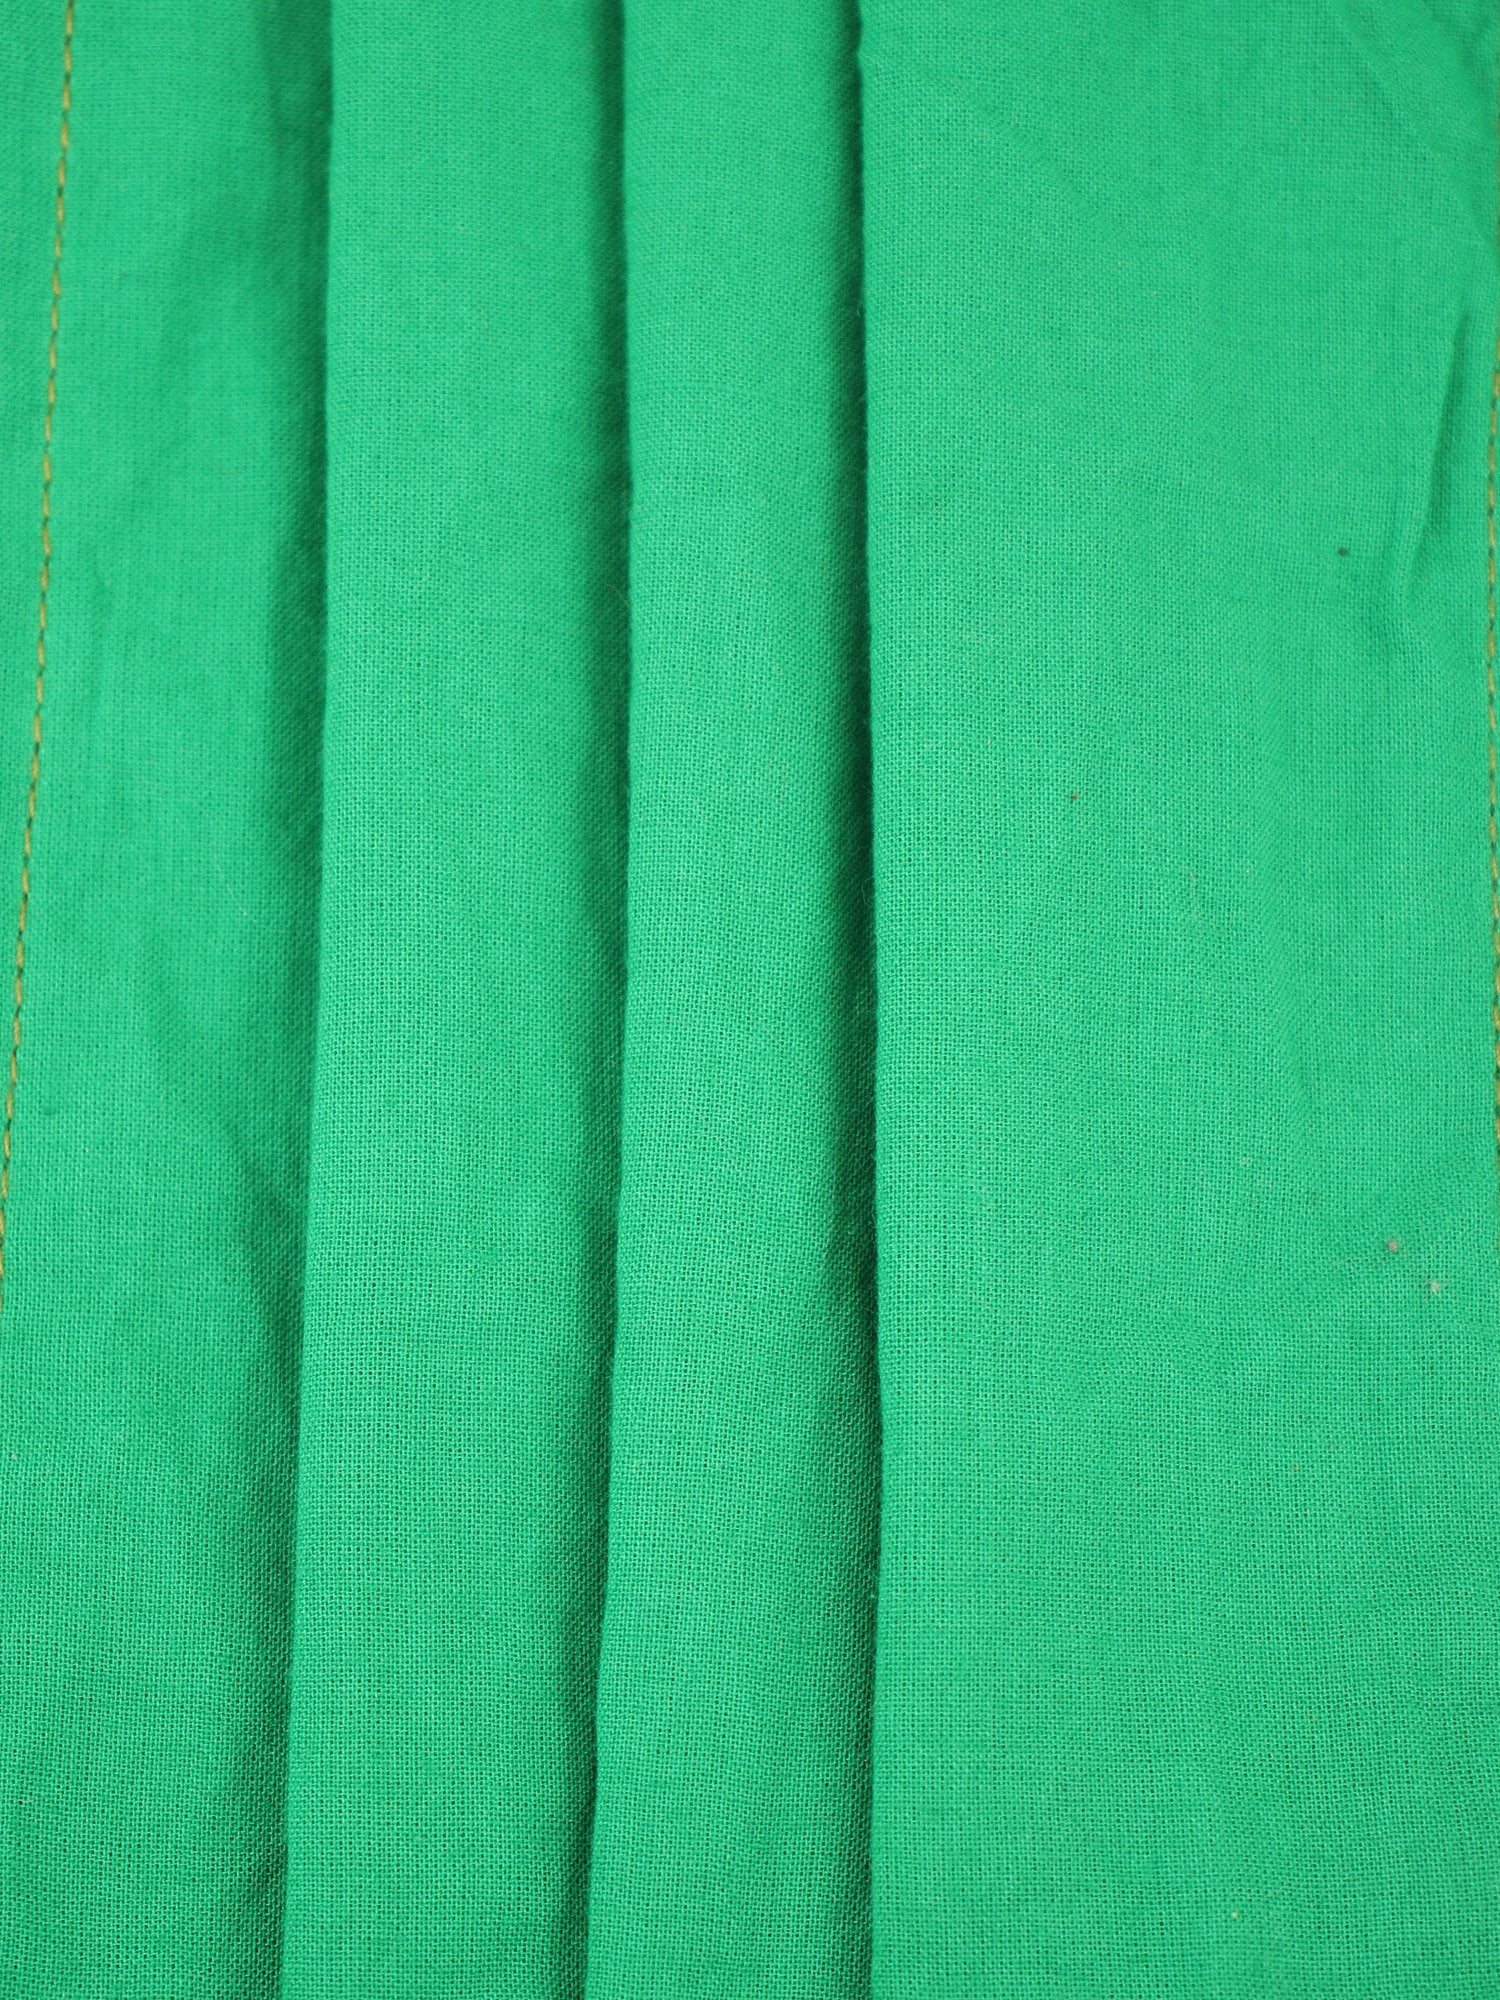 Solid Green  - Set of 2 Masks